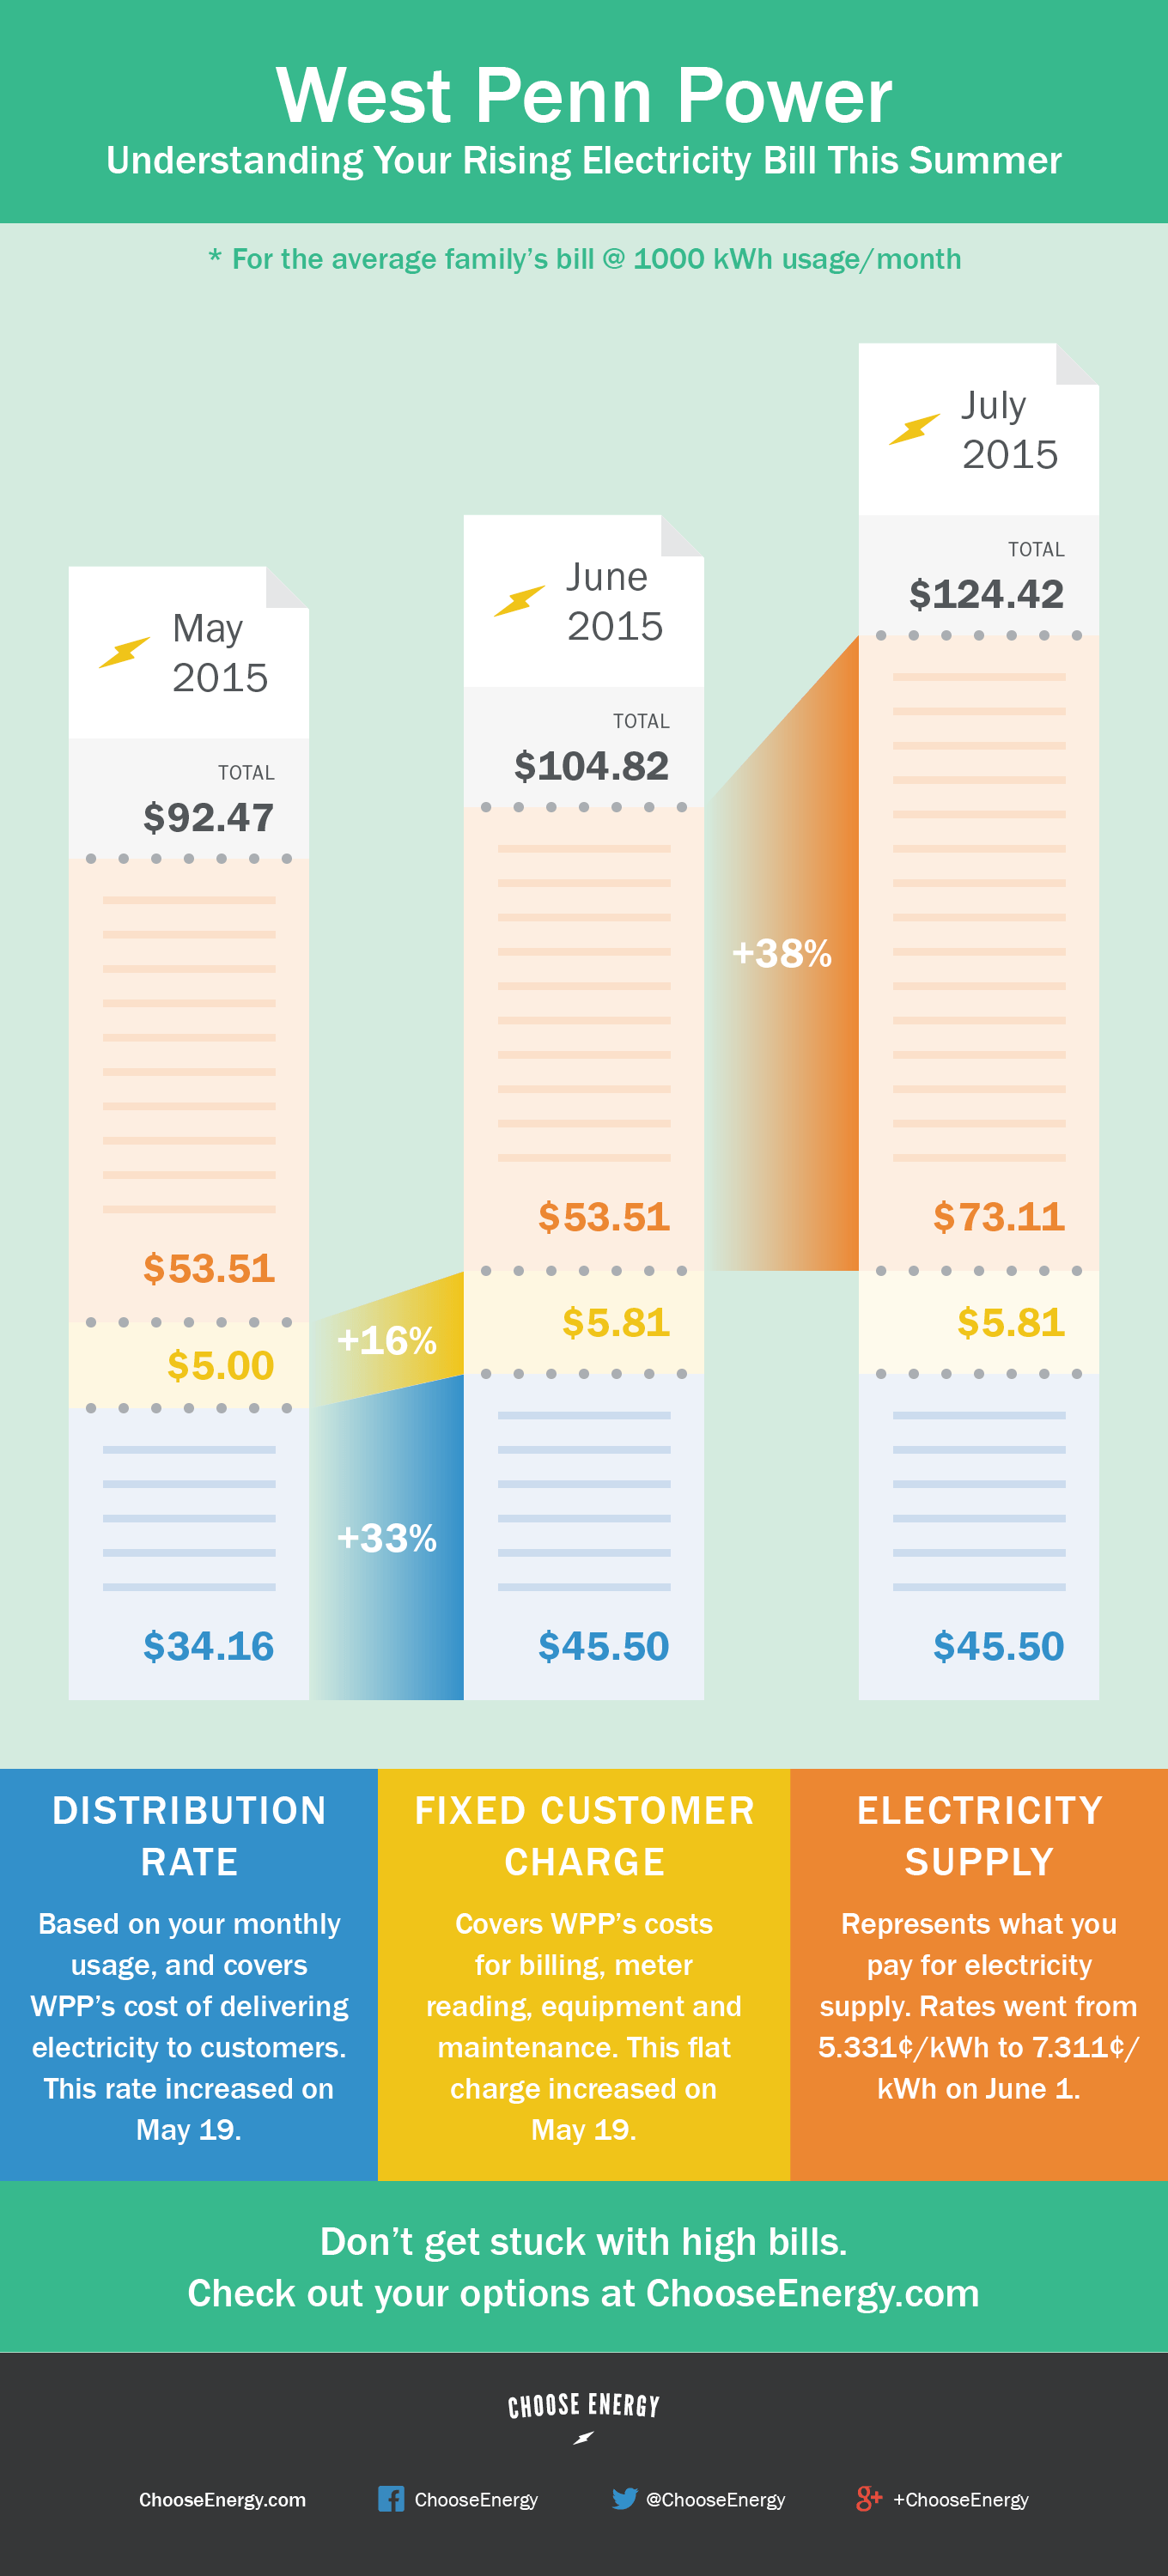 Why West Penn Power rates will increase this summer.